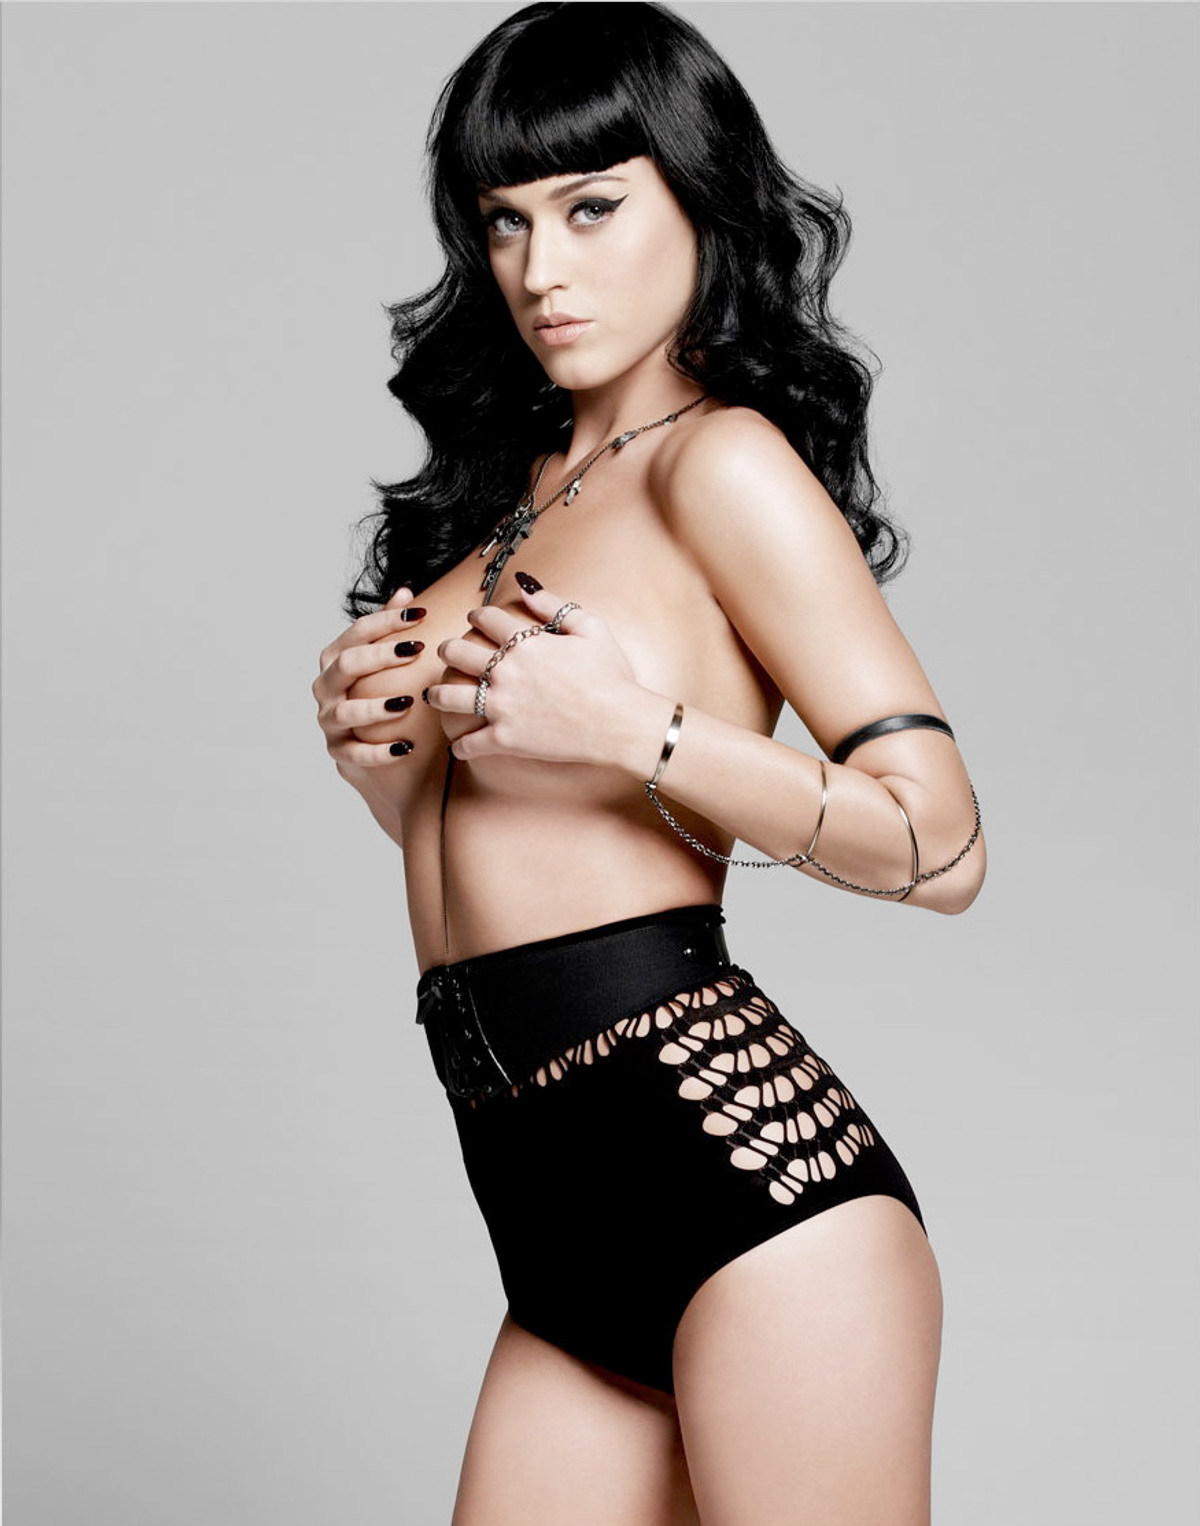 y35i725svcjjbu2g.D.0.32289_katy_perry_esquire_uk_august_outtake_122_84lo.jpg